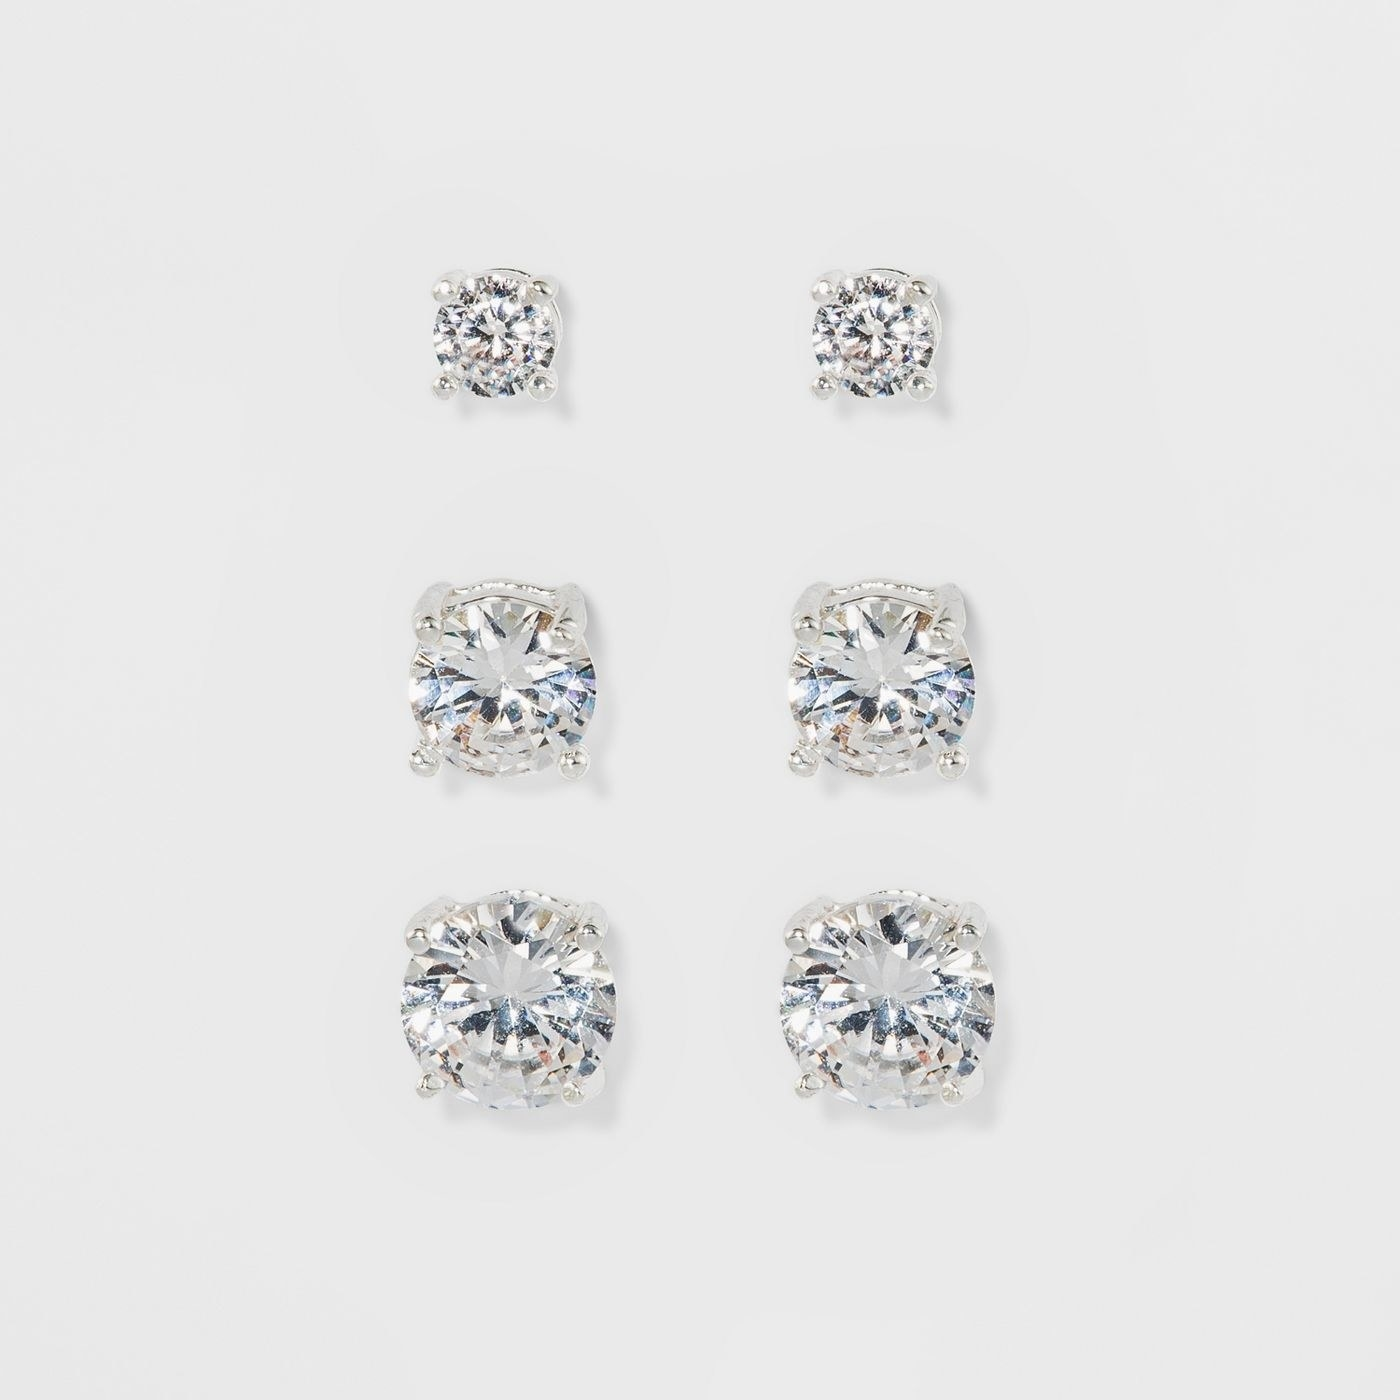 Set of 3 crystal round stud earrings